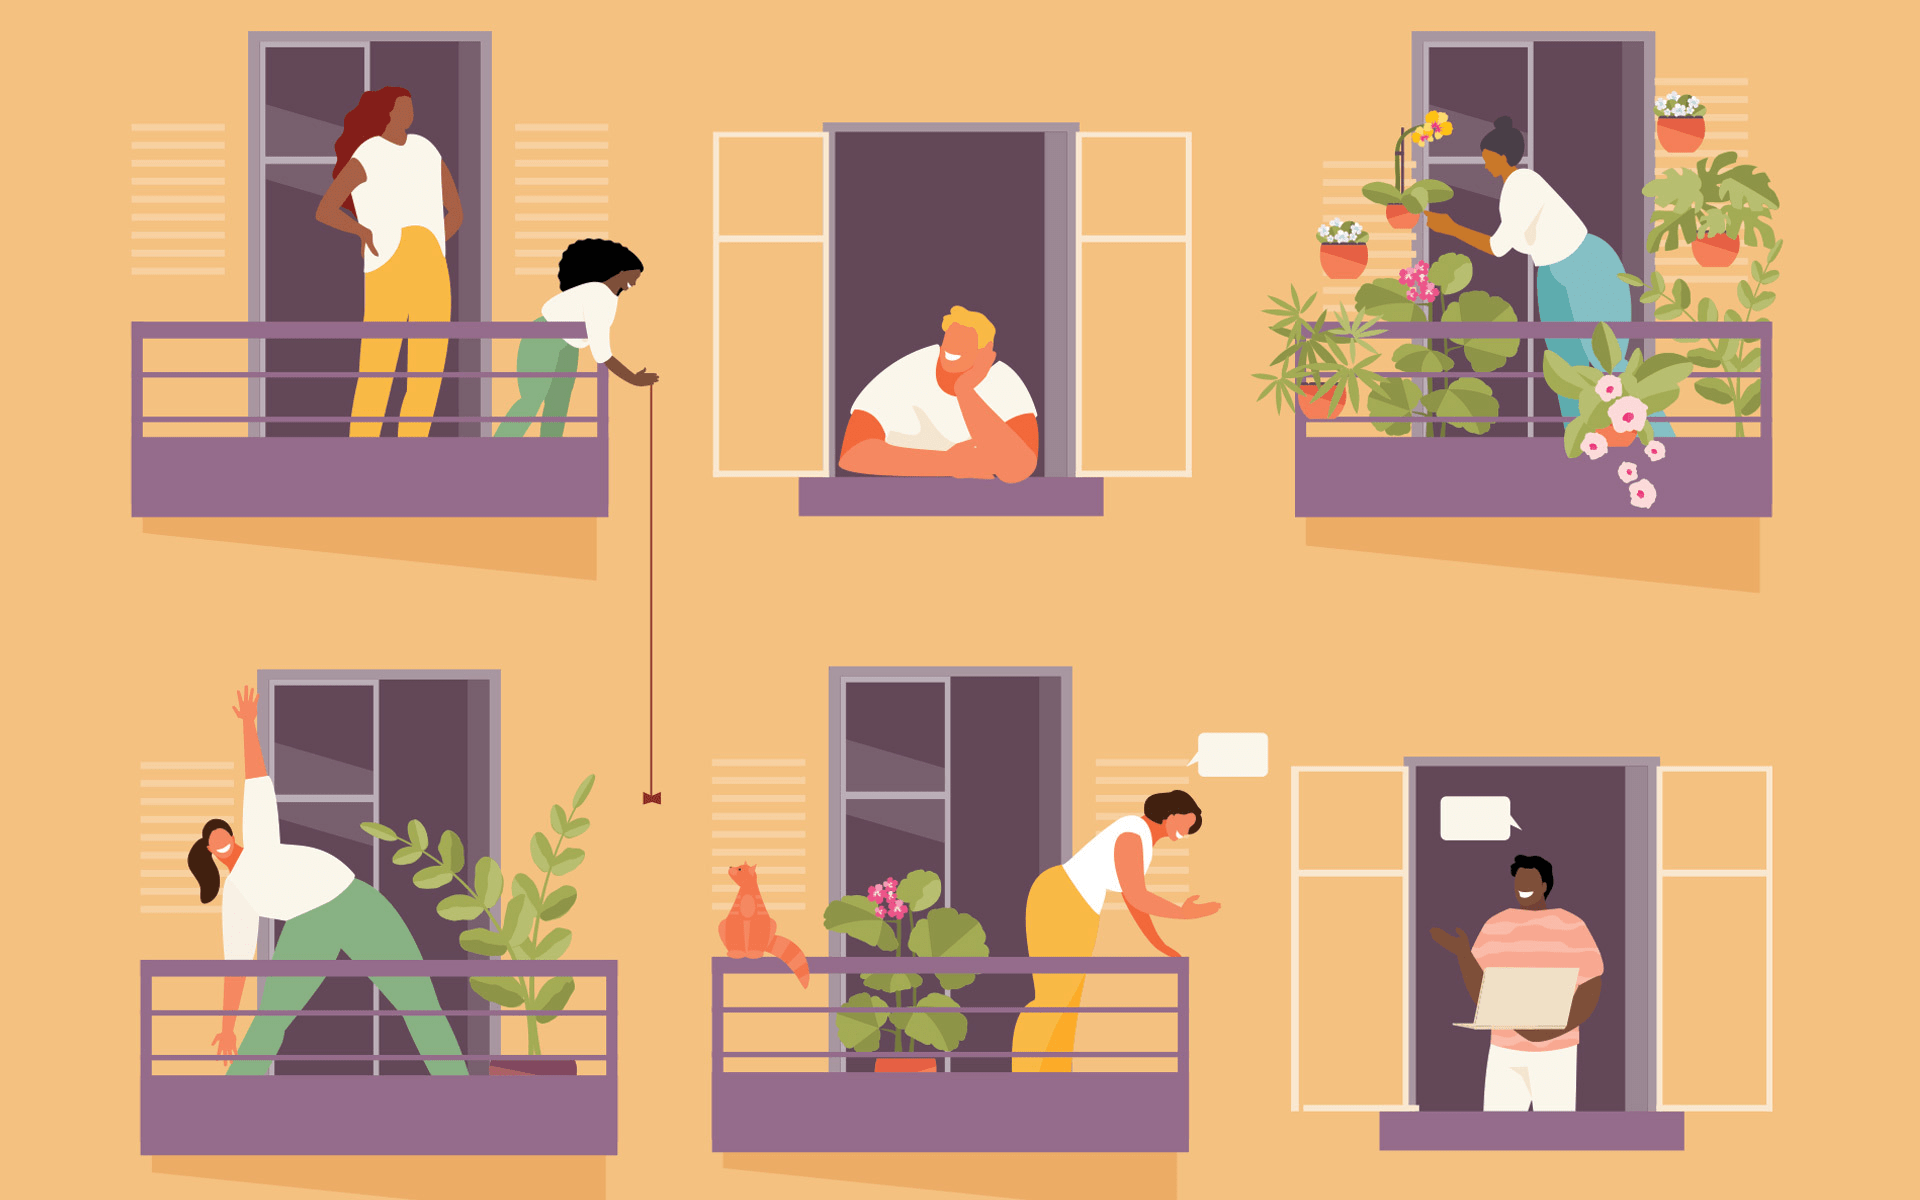 10 Mindfulness Tips for Every Day—Illustration of a yellow apartment building where people are doing various activities on their balconies.